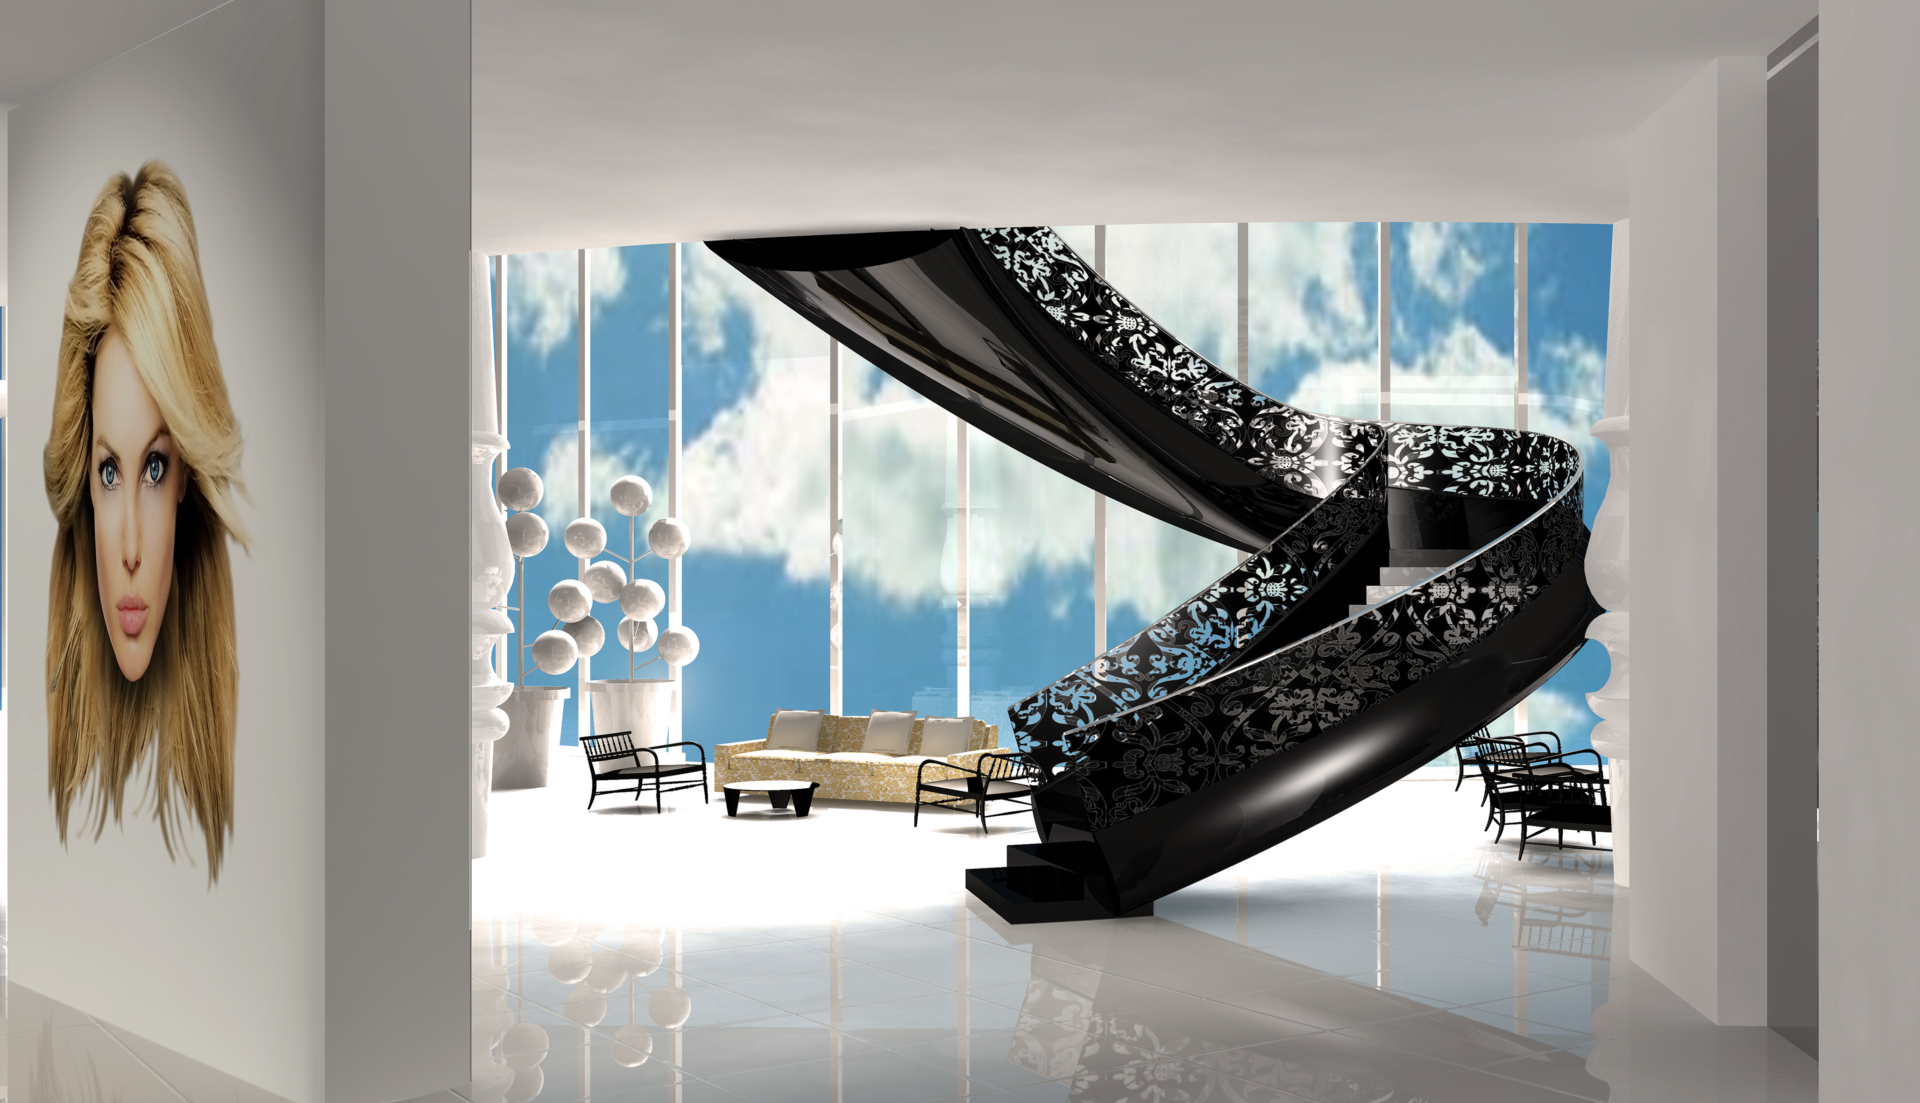 Mondrian south beach glamour tour operator for Marcel wanders opere